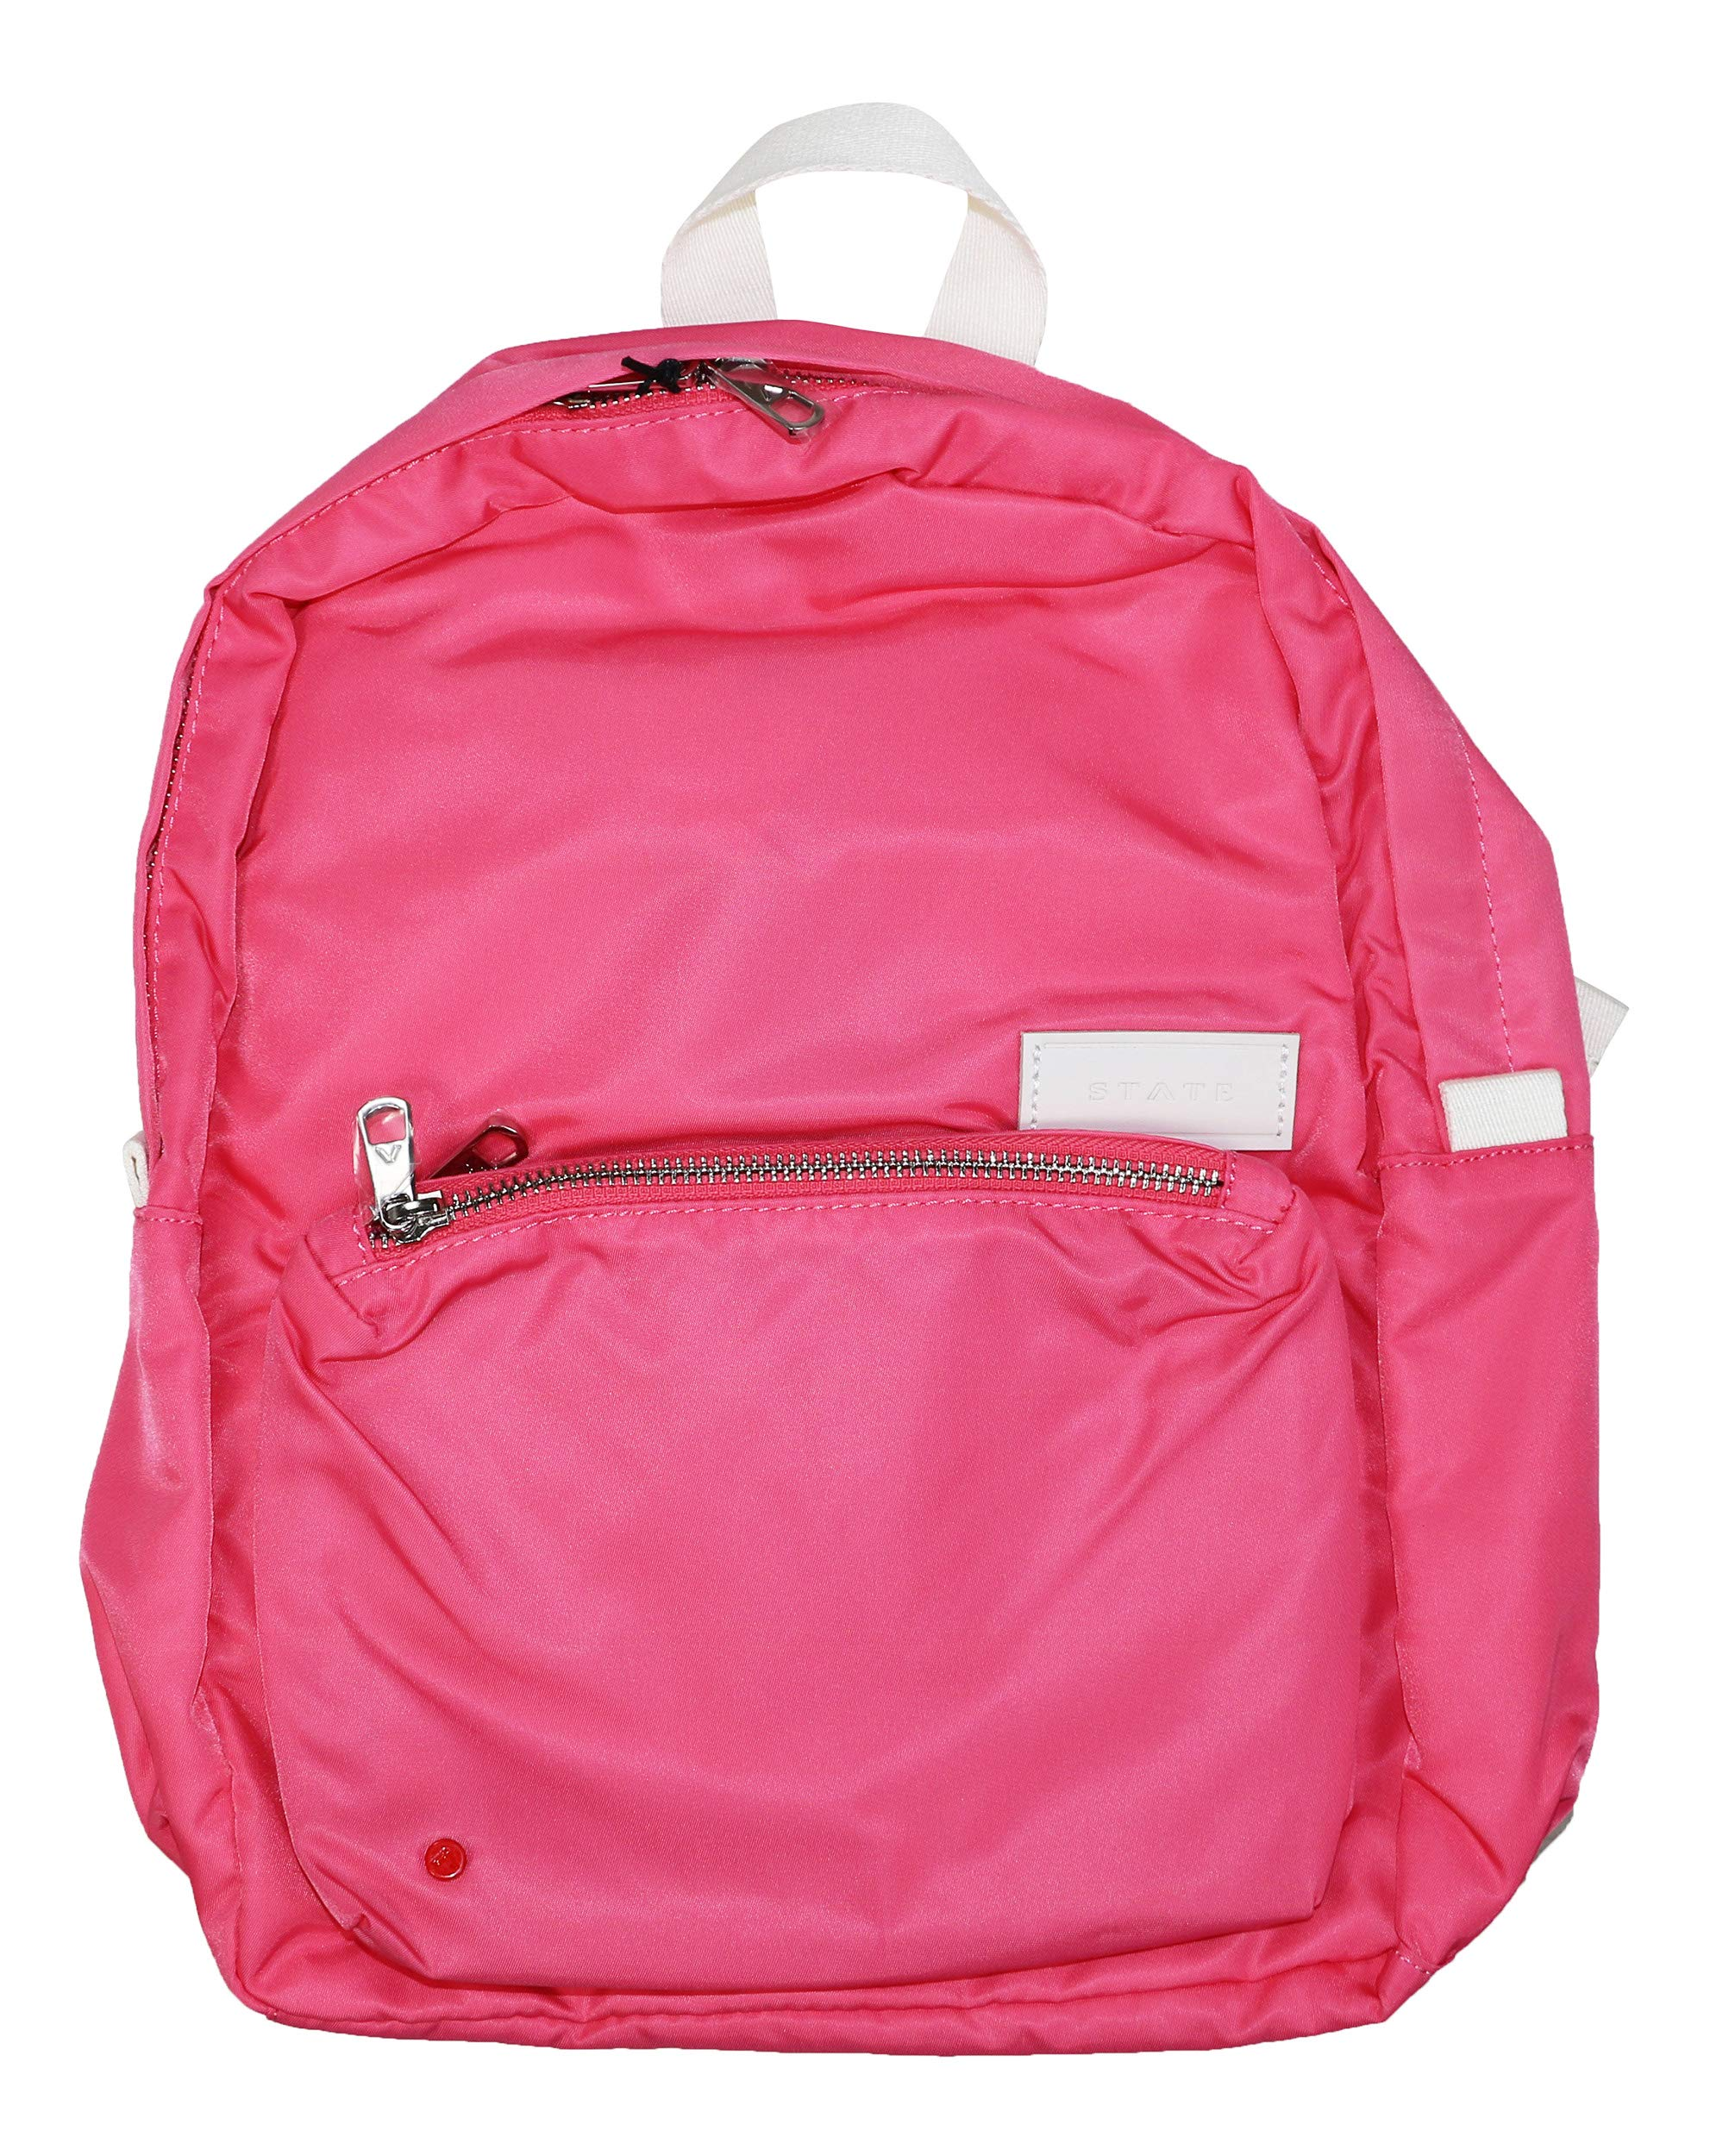 STATE Women's Mini Lorimer Backpack, Poppy, Pink, One Size by STATE Bags